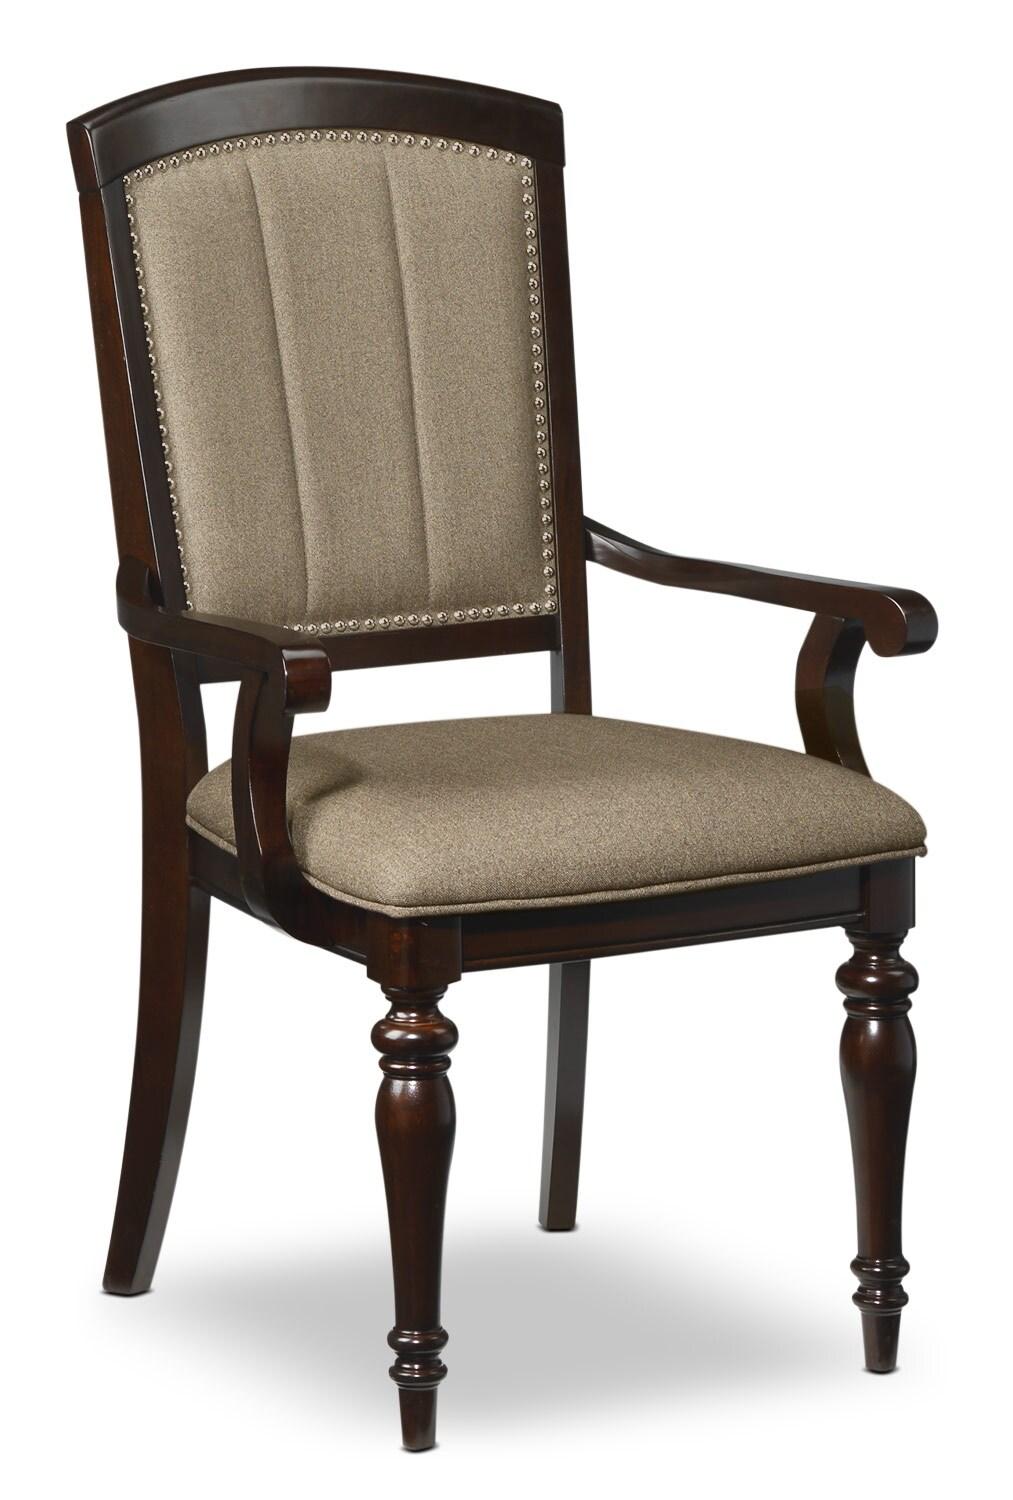 Dining Room Furniture - Thoreaux Arm Chair